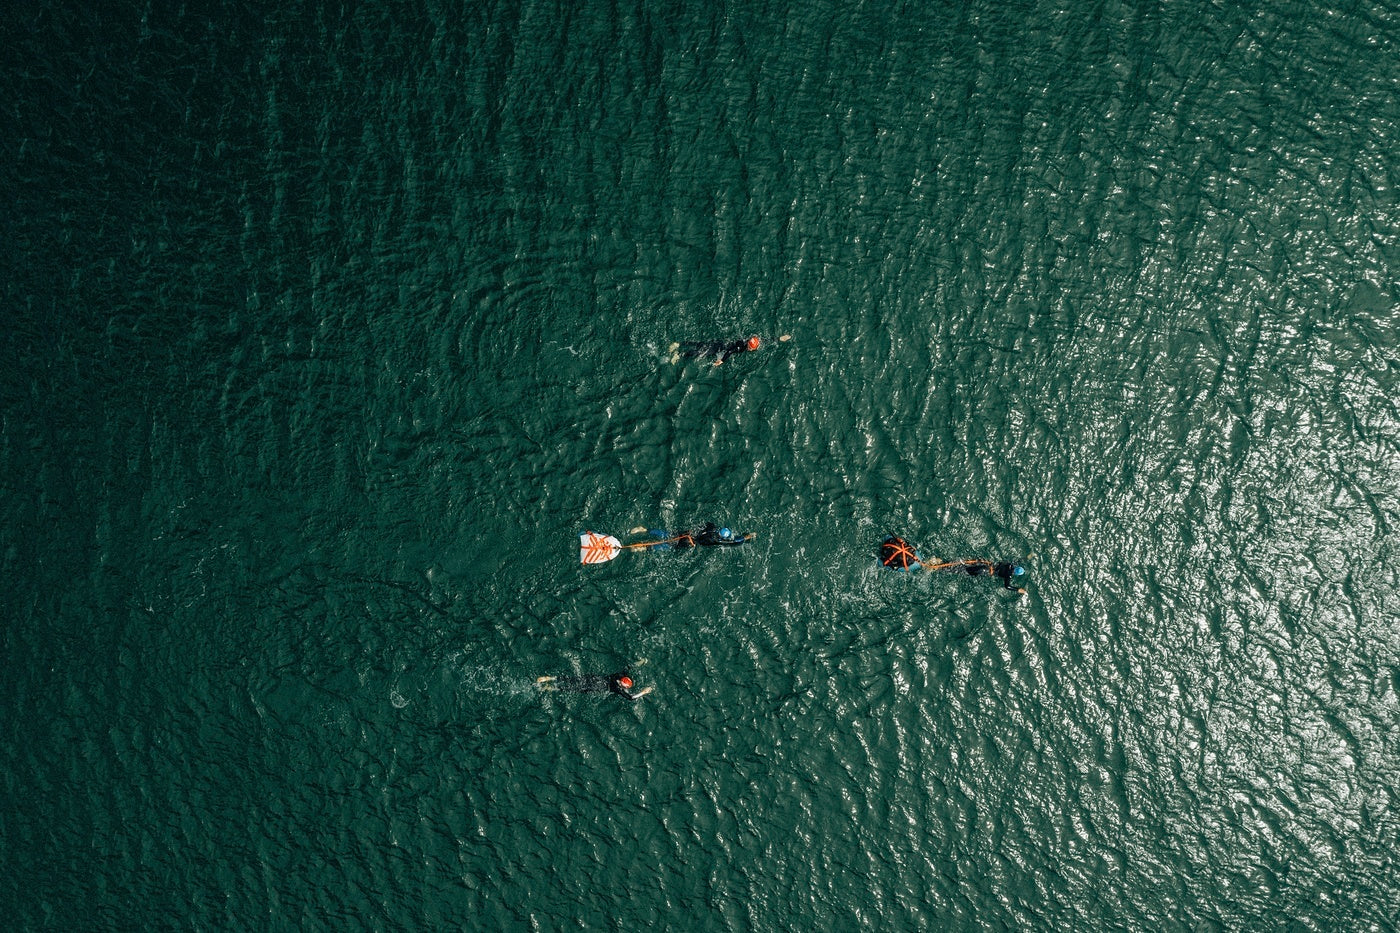 A group of sea swimmers captured by a drone above